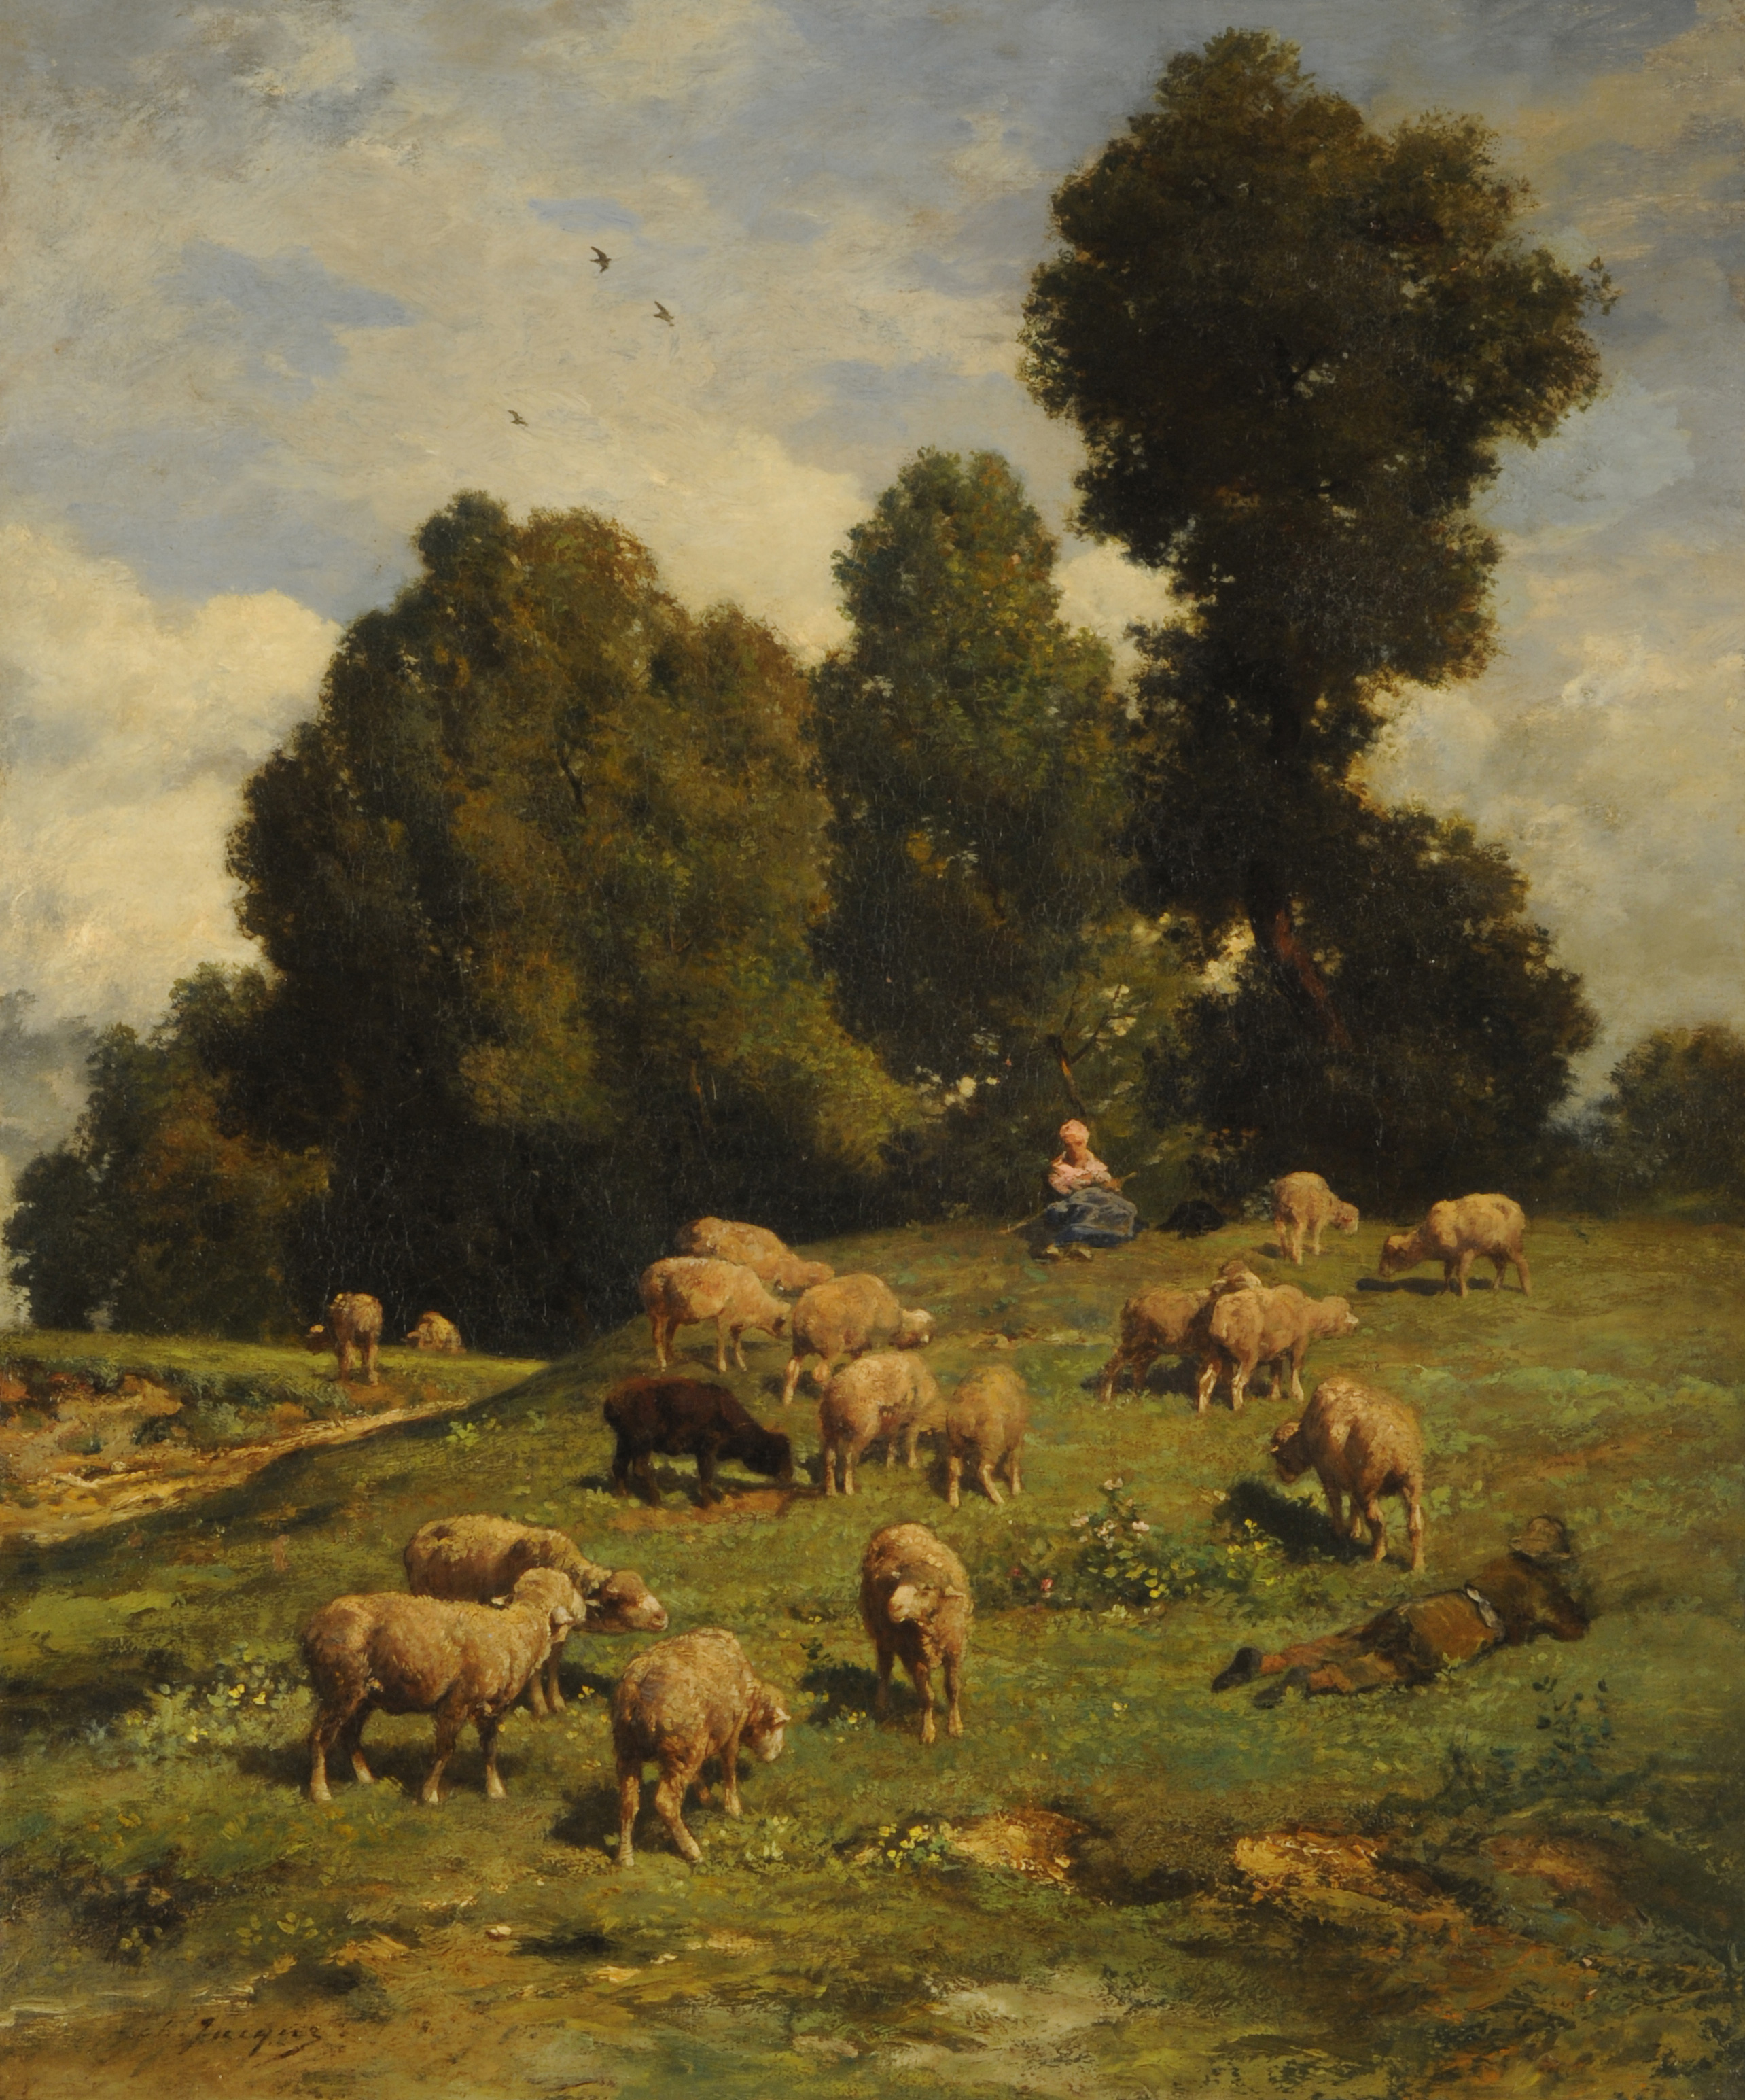 File:Moutons au pâturage - Charles Jacque.jpg - Wikimedia Commons